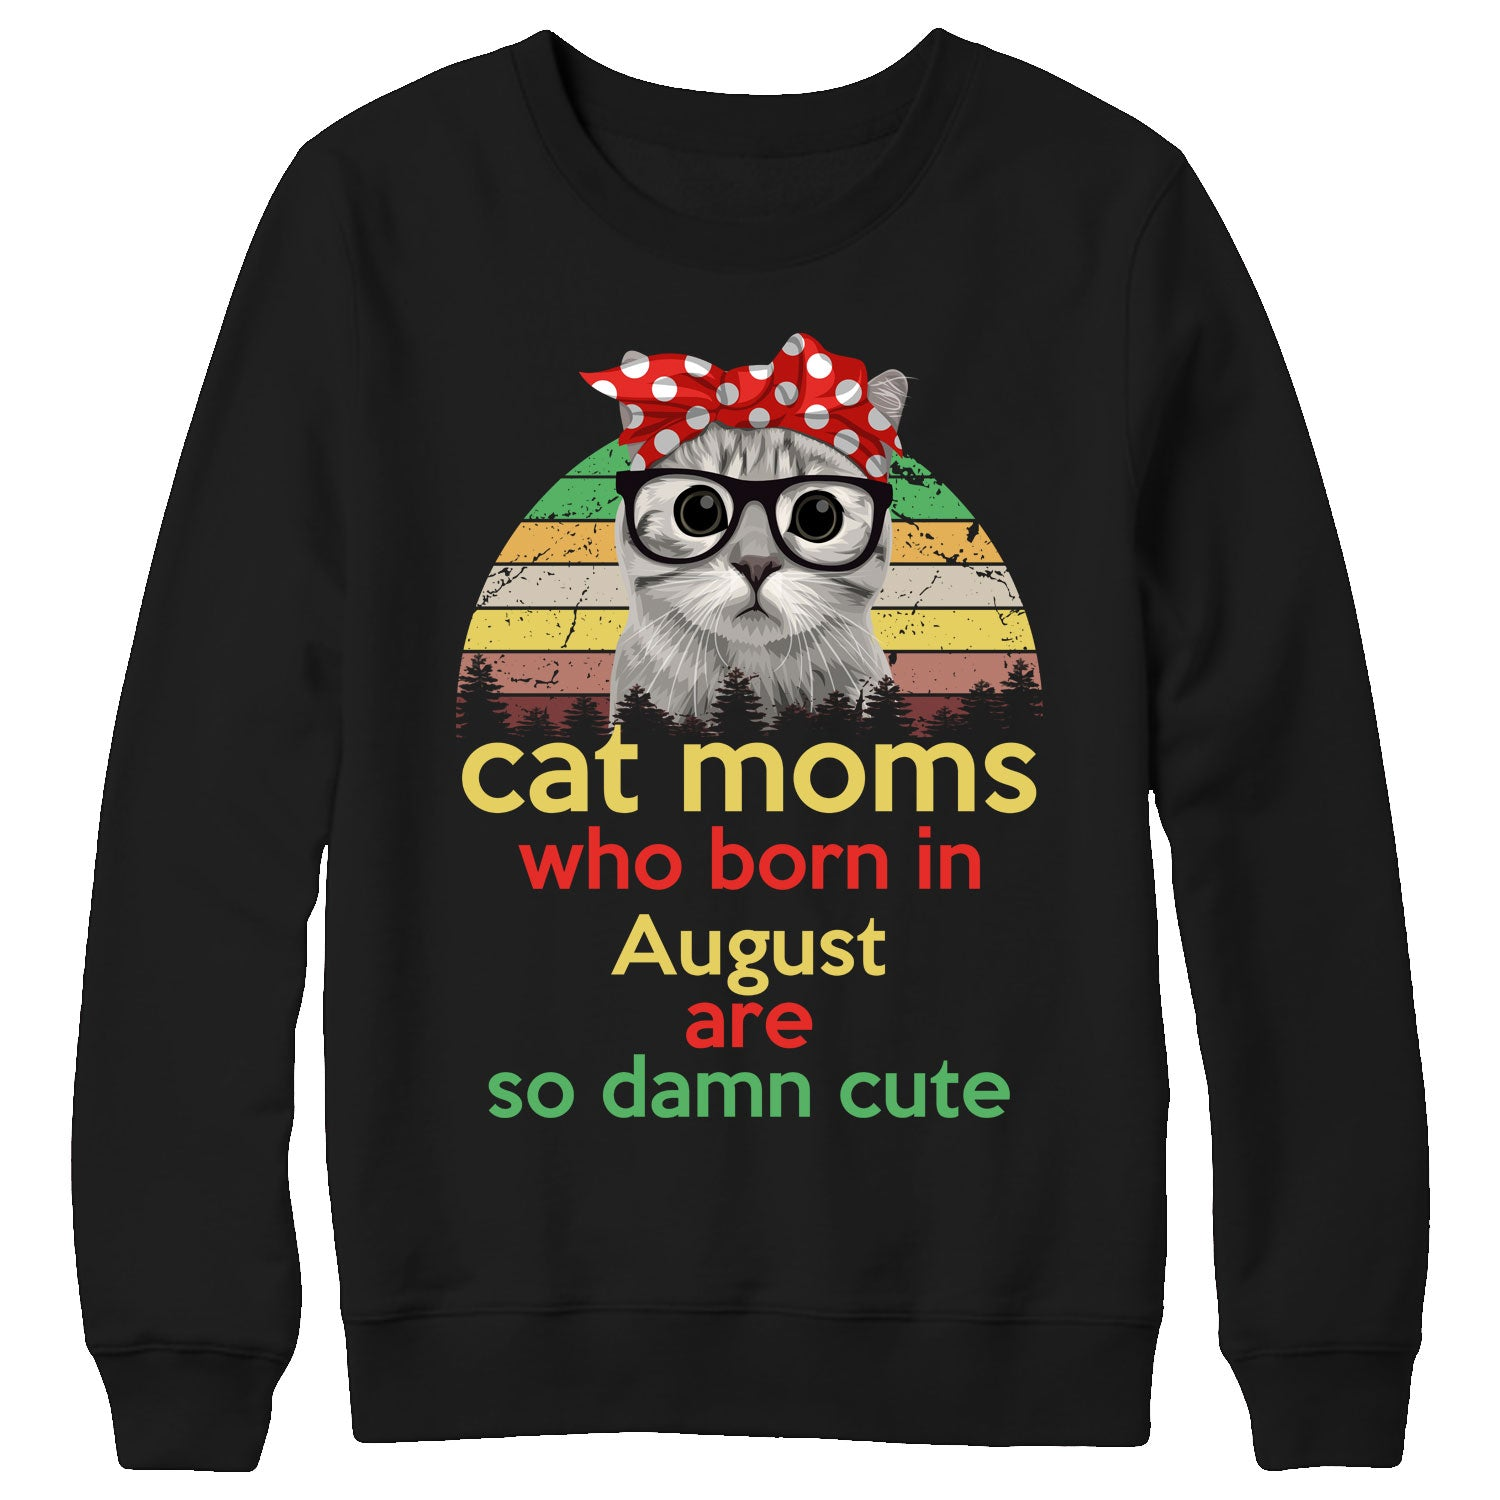 Cat moms who born in August